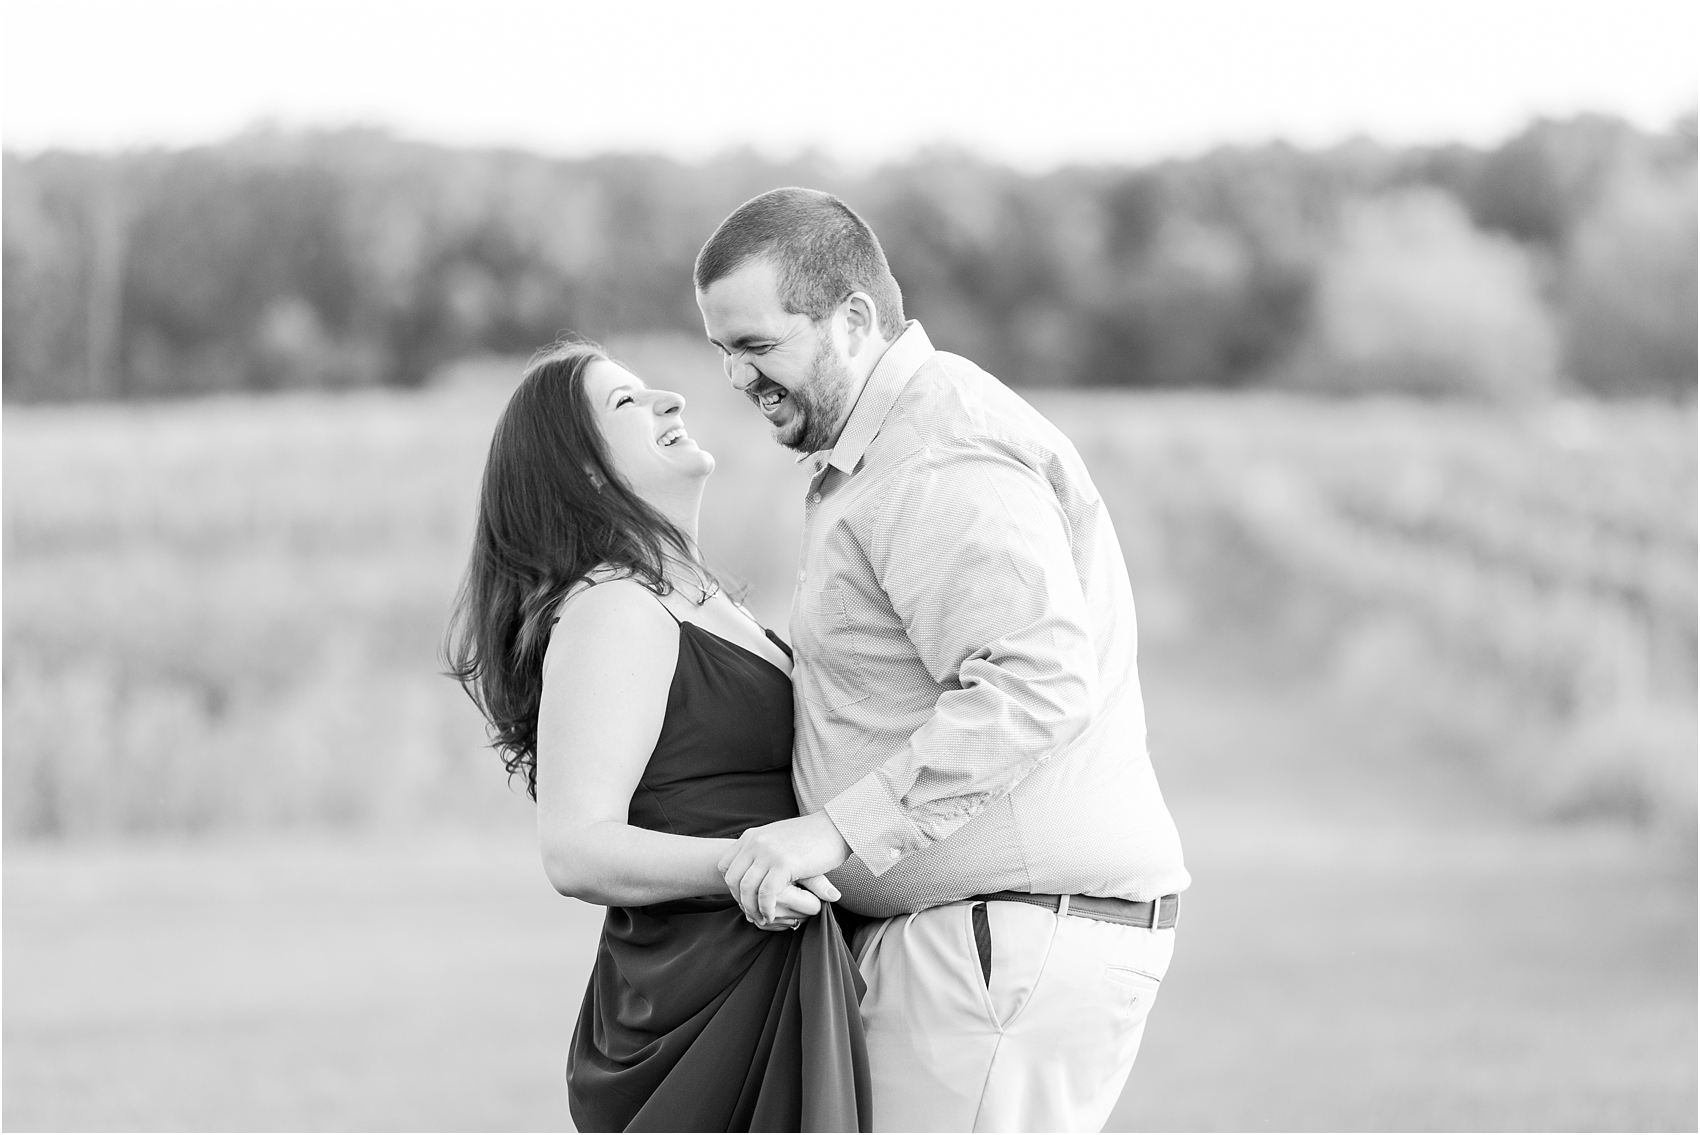 candid-romantic-summer-engagement-photos-at-hidden-lake-gardens-and-black-fire-winery-in-tipton-mi-by-courtney-carolyn-photography_0003.jpg